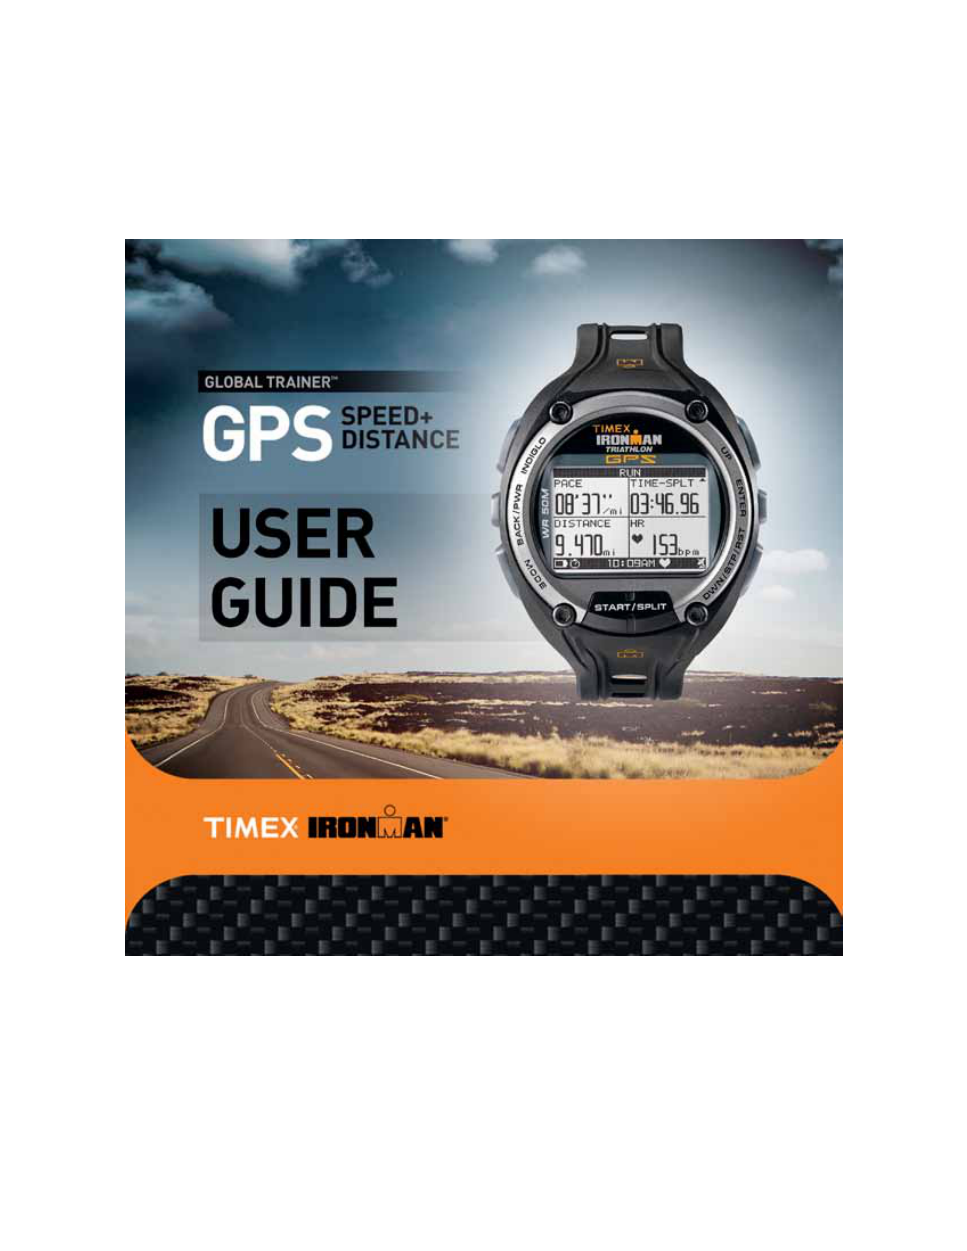 timex manual guide 1 manuals and user guides site u2022 rh urbanmanualguide today Timex Watch Indiglo Instruction Manual Timex Indiglo Watch Manual T49851